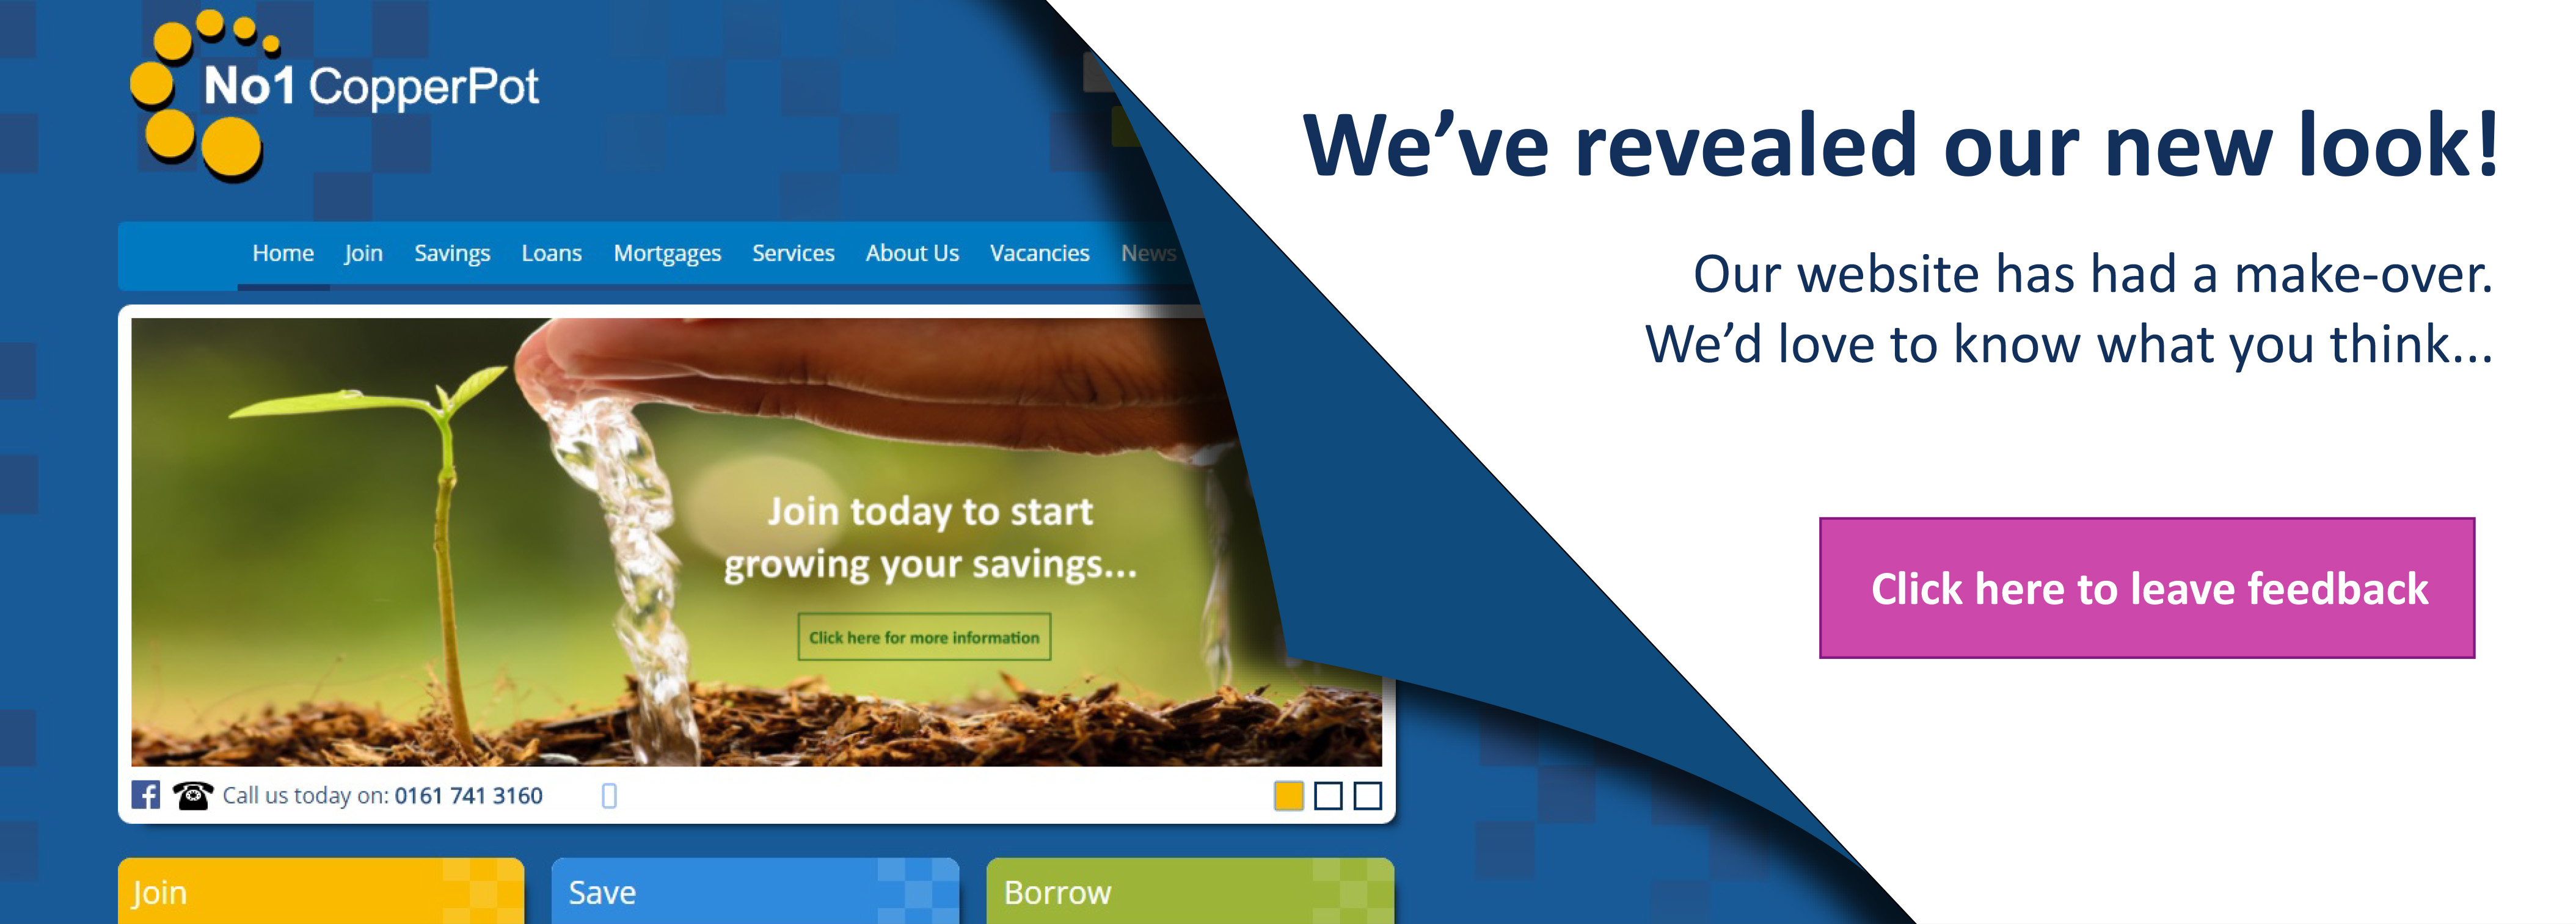 Welcome to our updated website